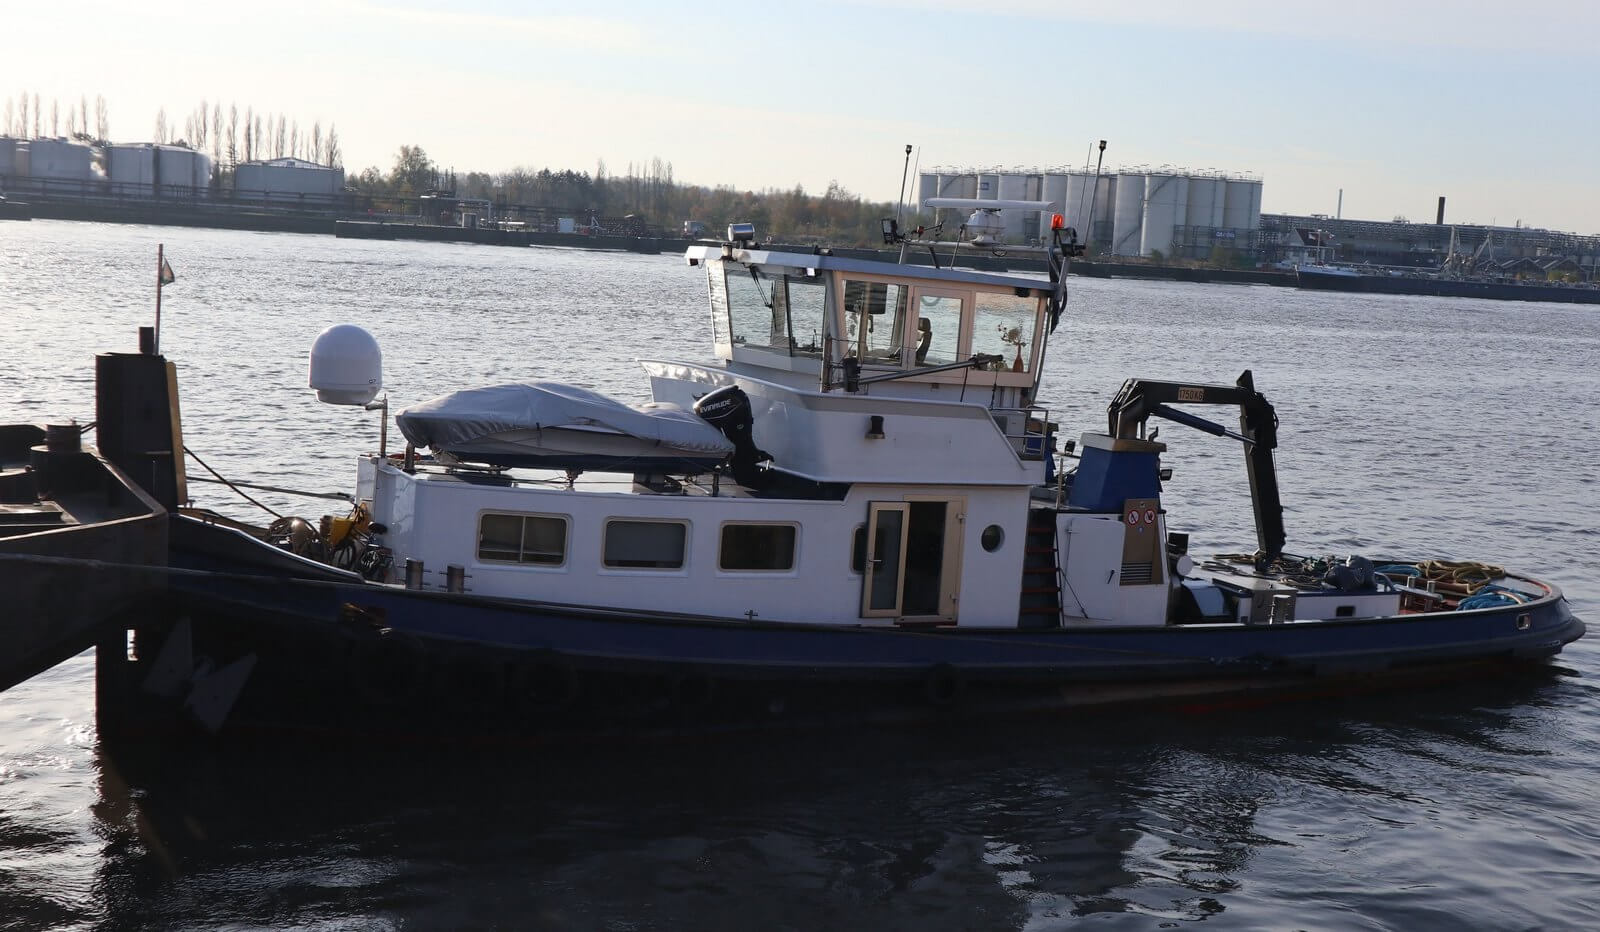 used tug boat for sale 07582 (3)